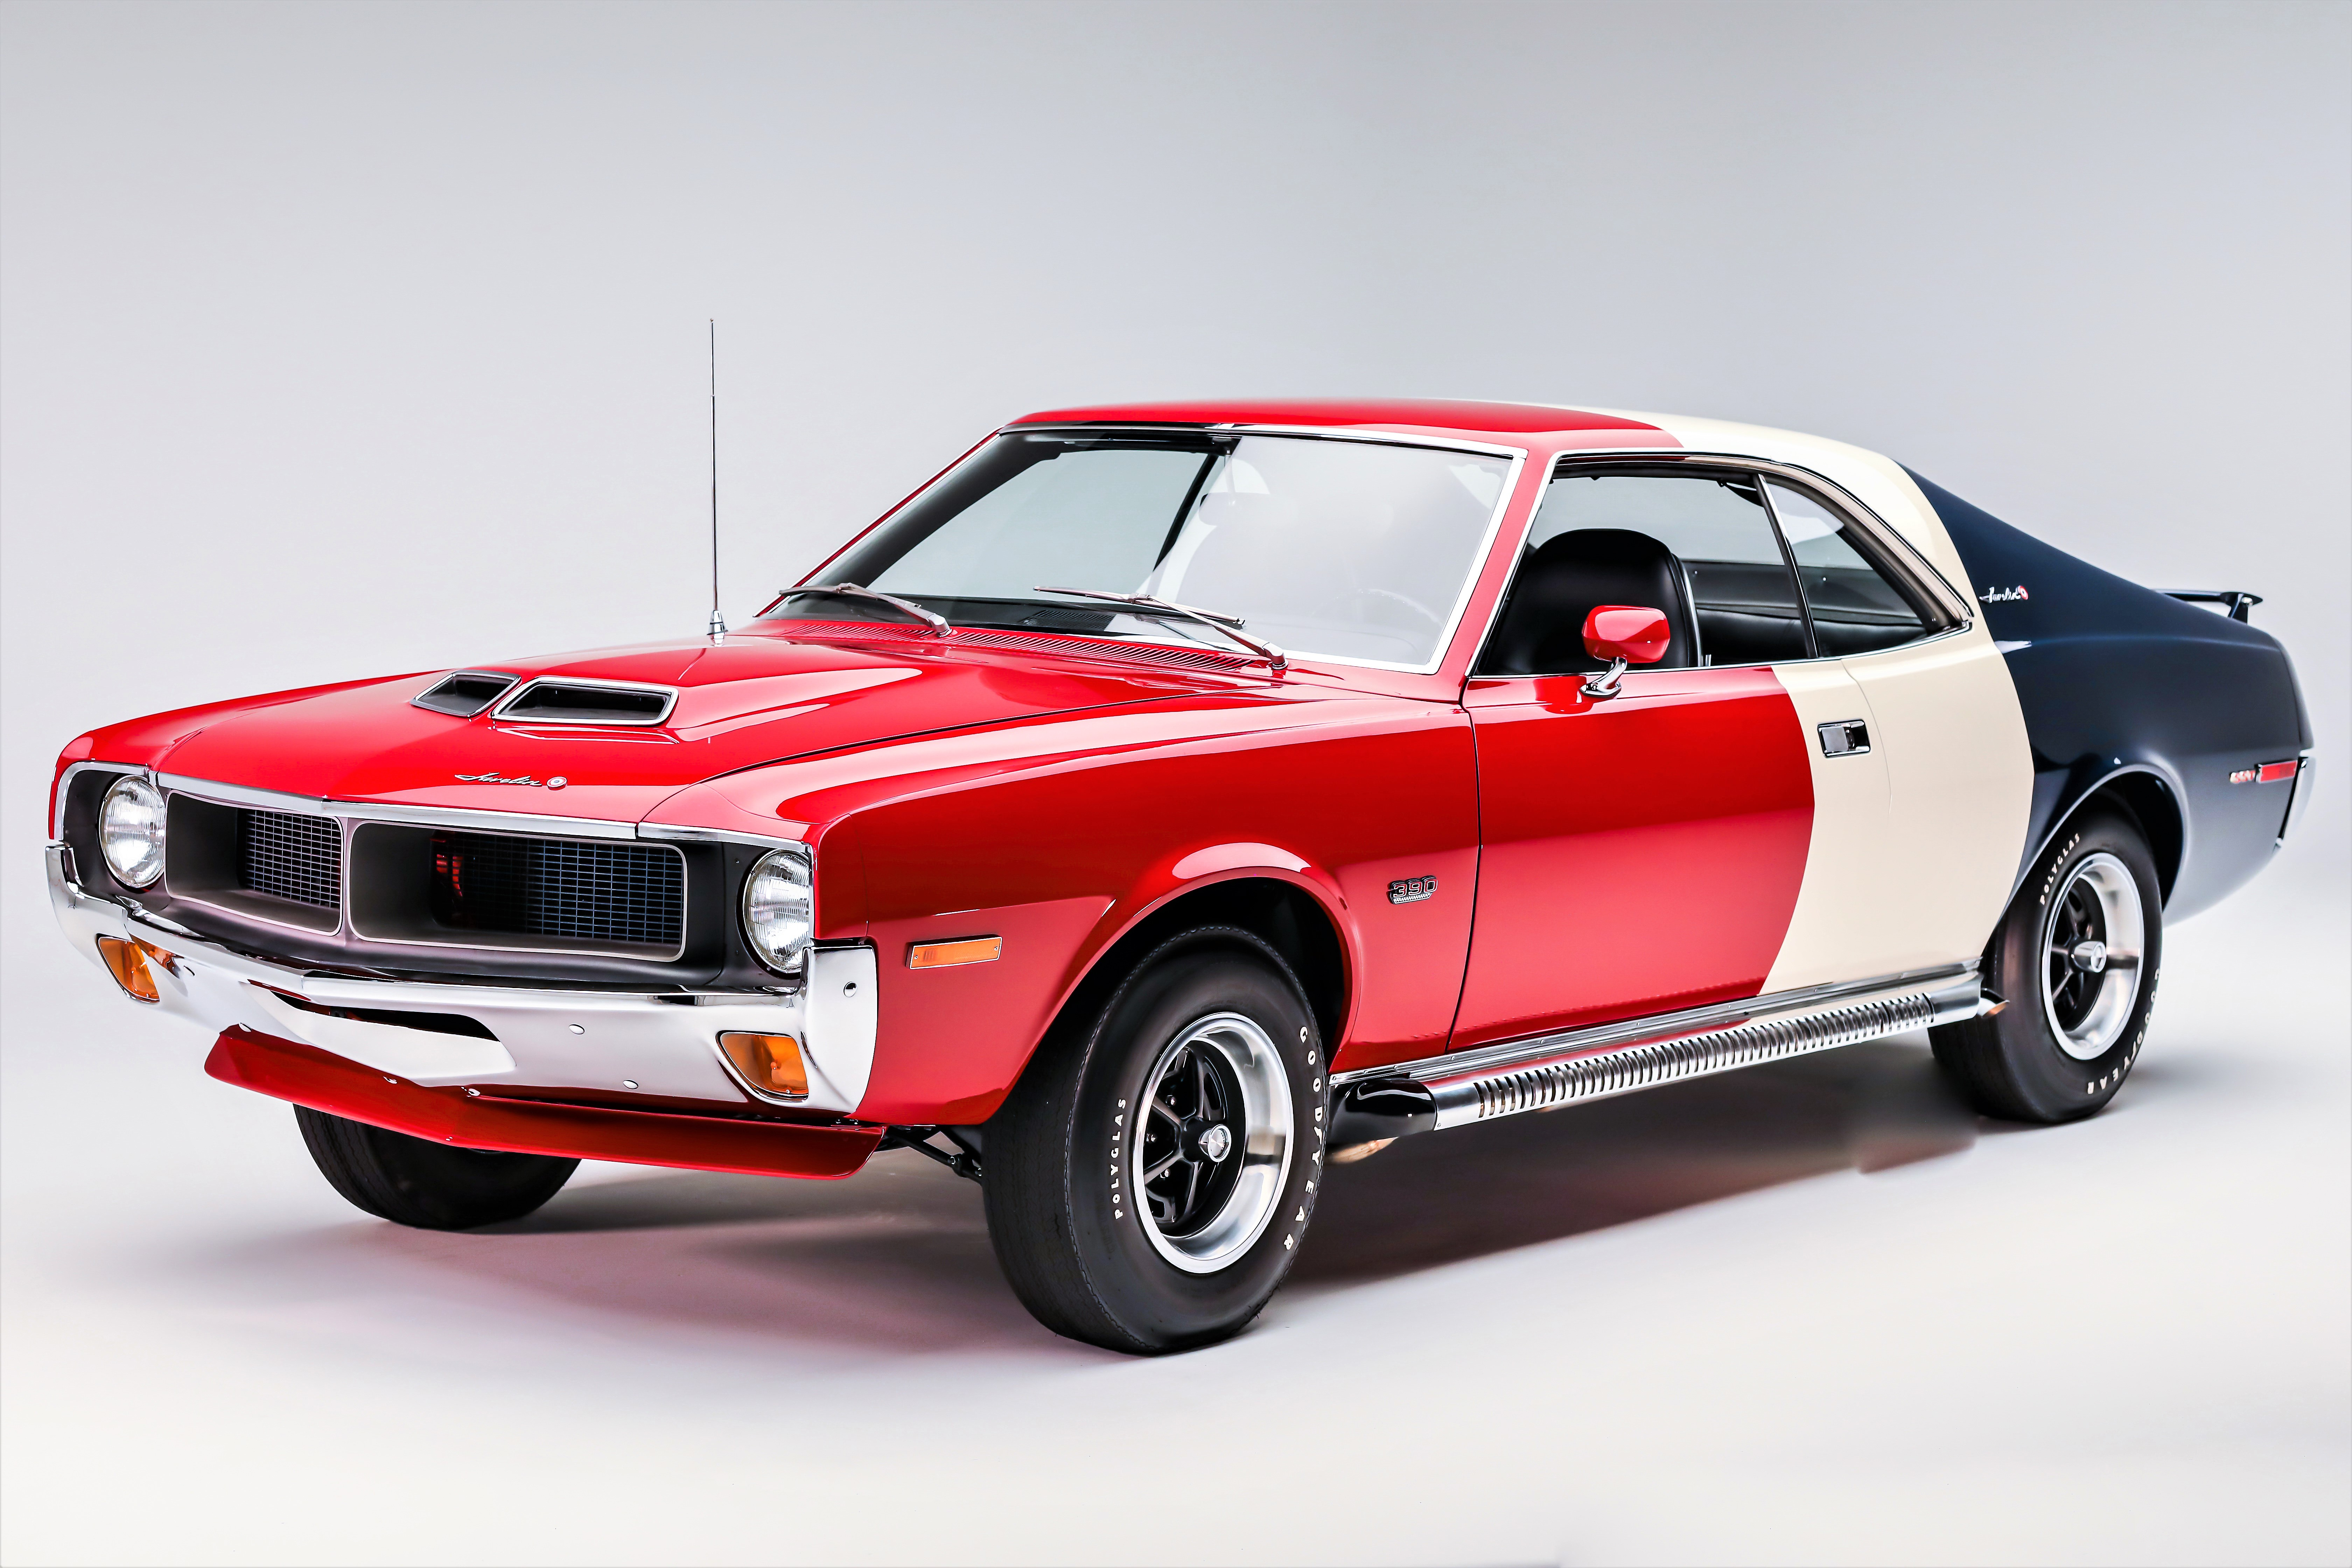 Unique mashup rare amc javelin a top restorer and the amish